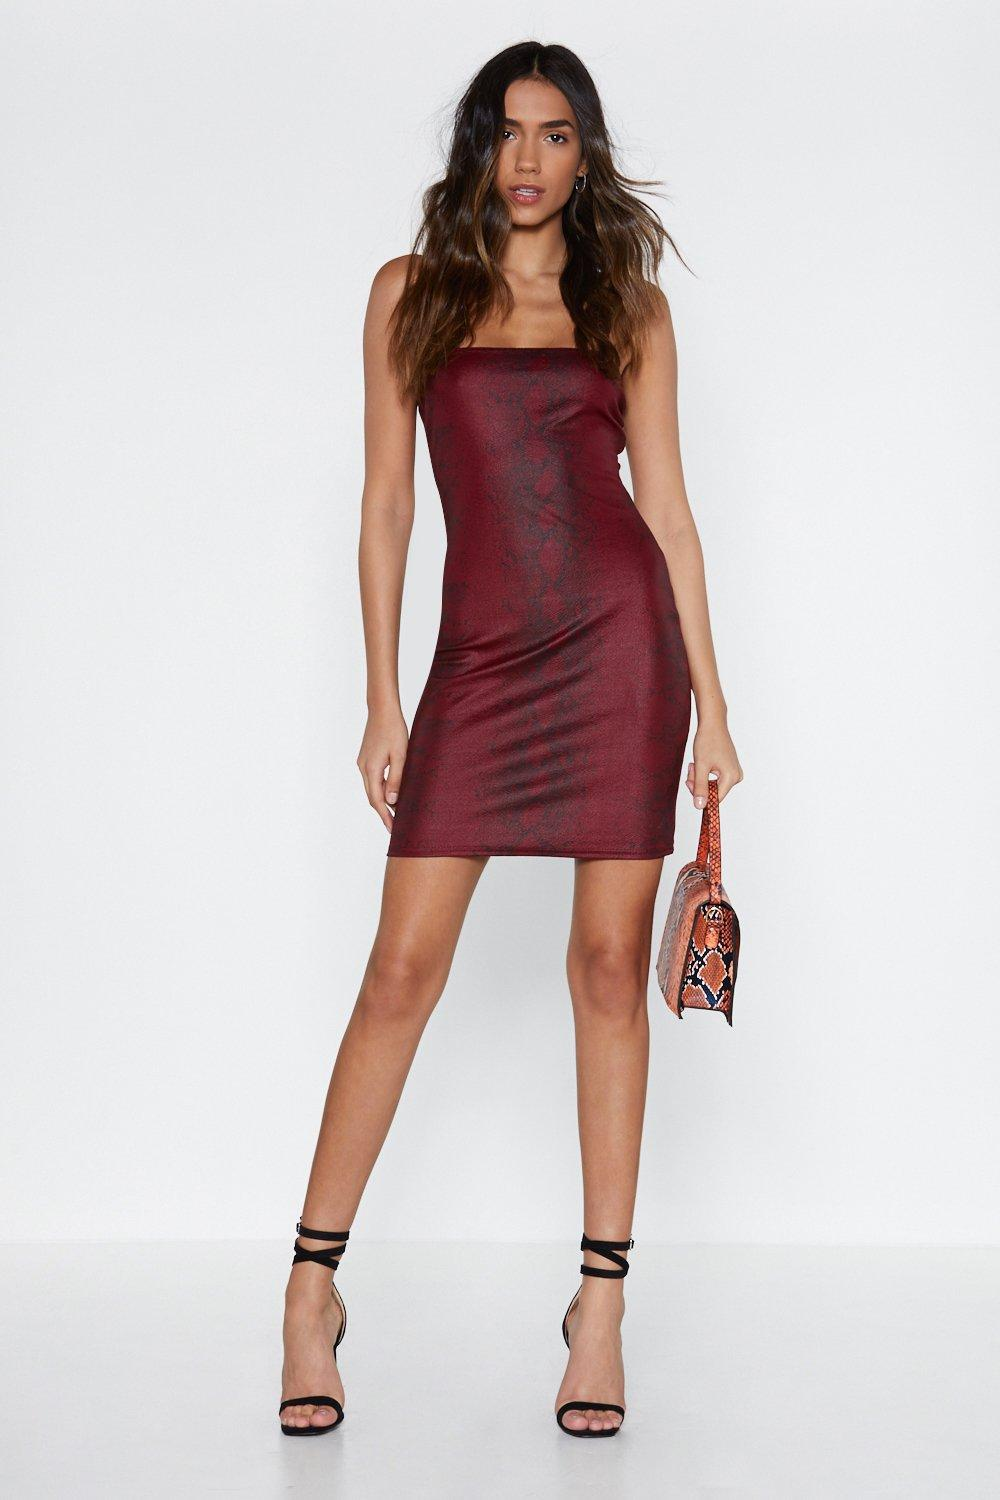 7aad477fa4e Womens Red Calming the Snake Patent Dress. Hover to zoom